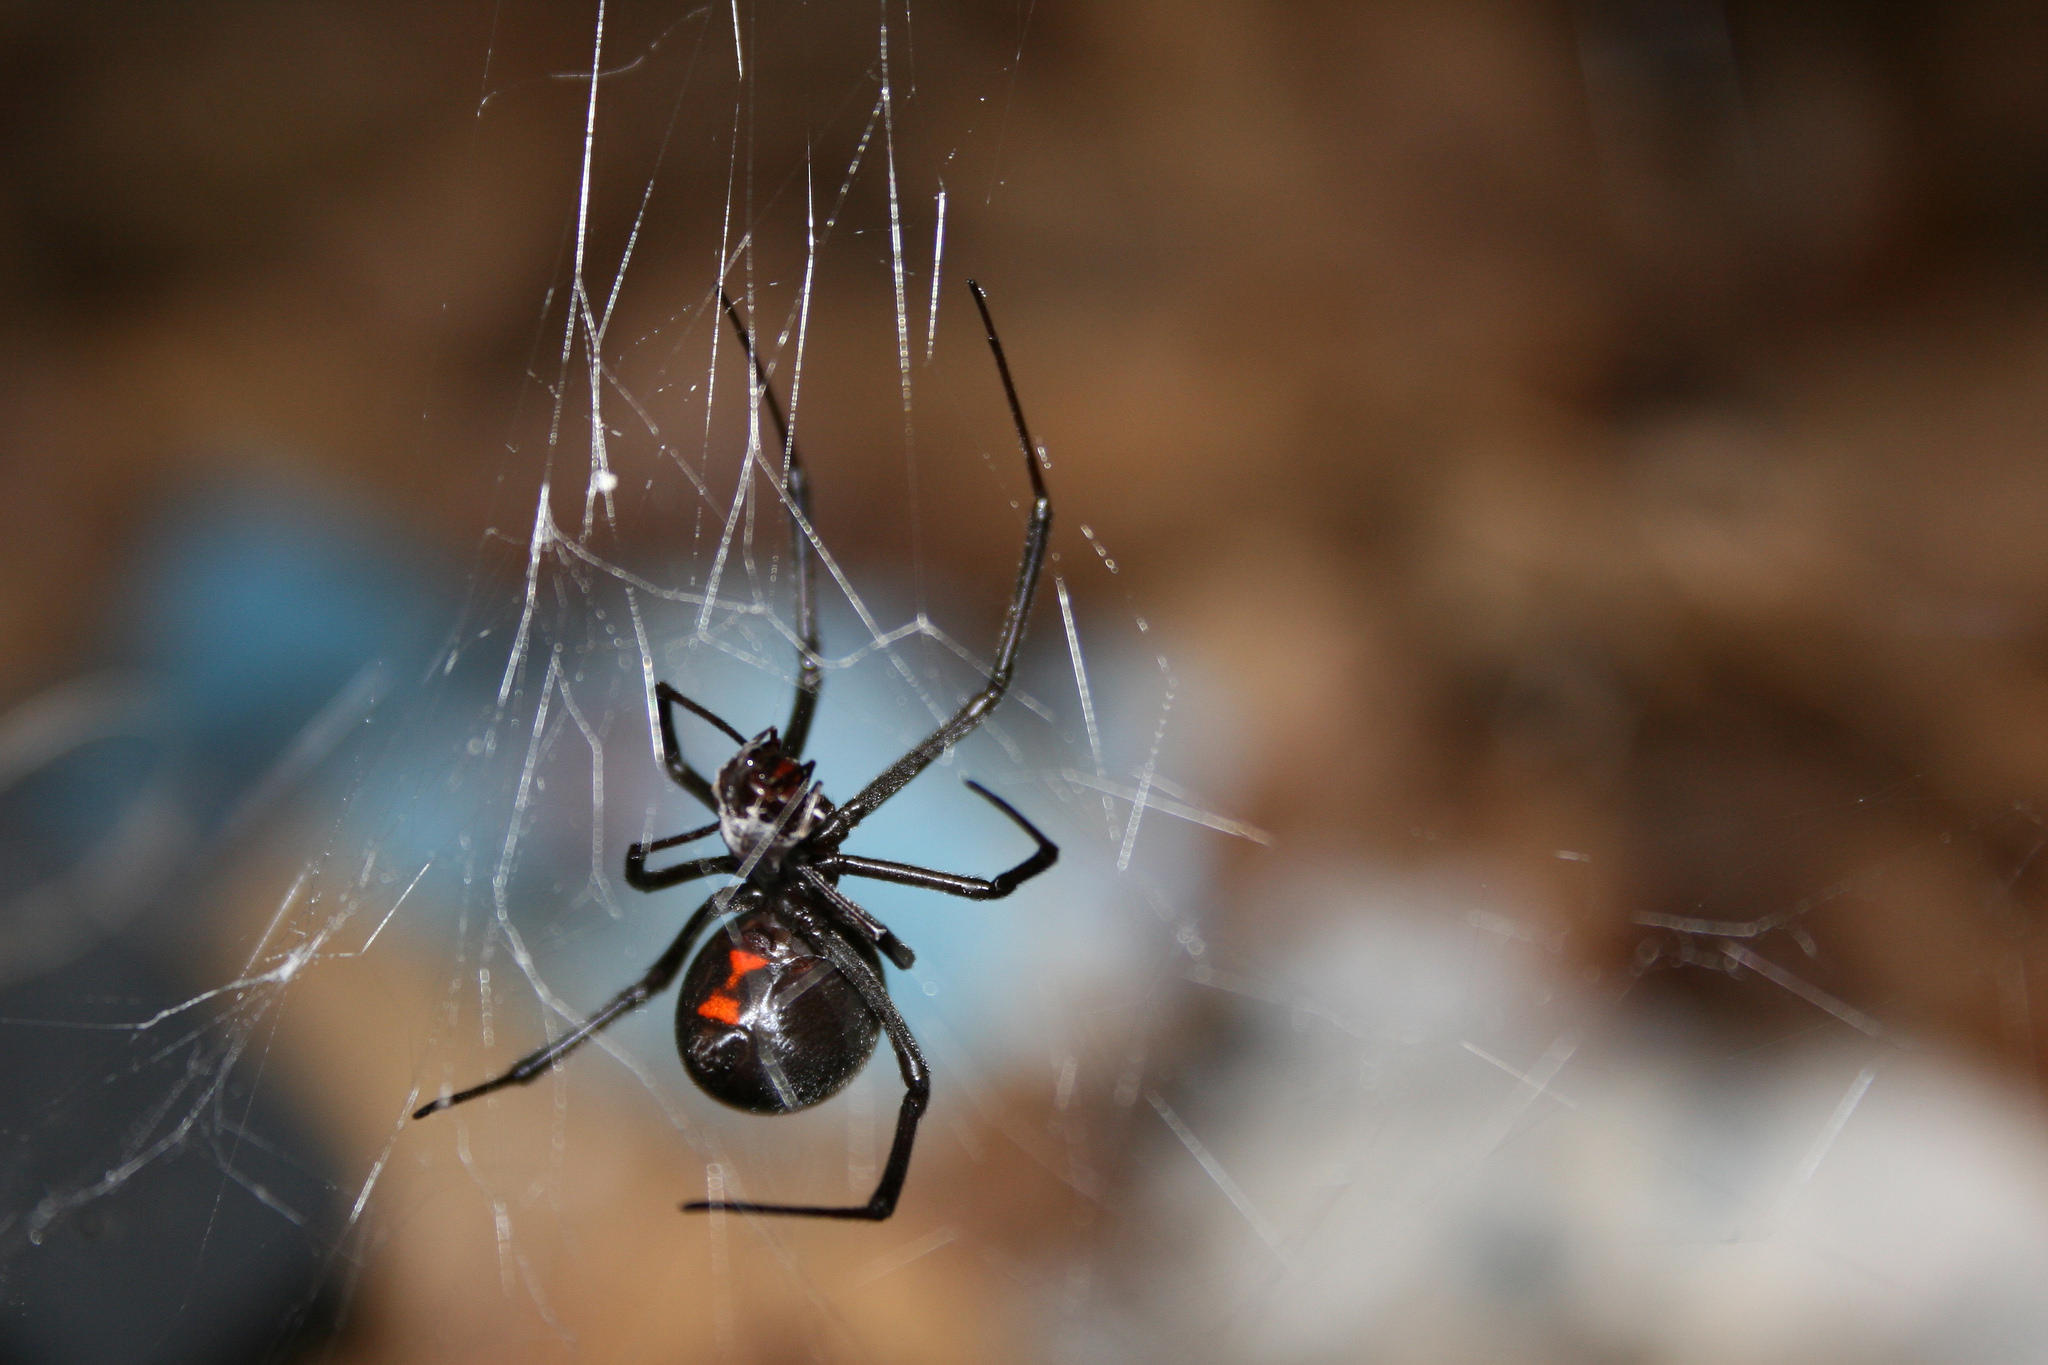 Could Spider Venom Hold The Holy Grail Of Natural Pesticides